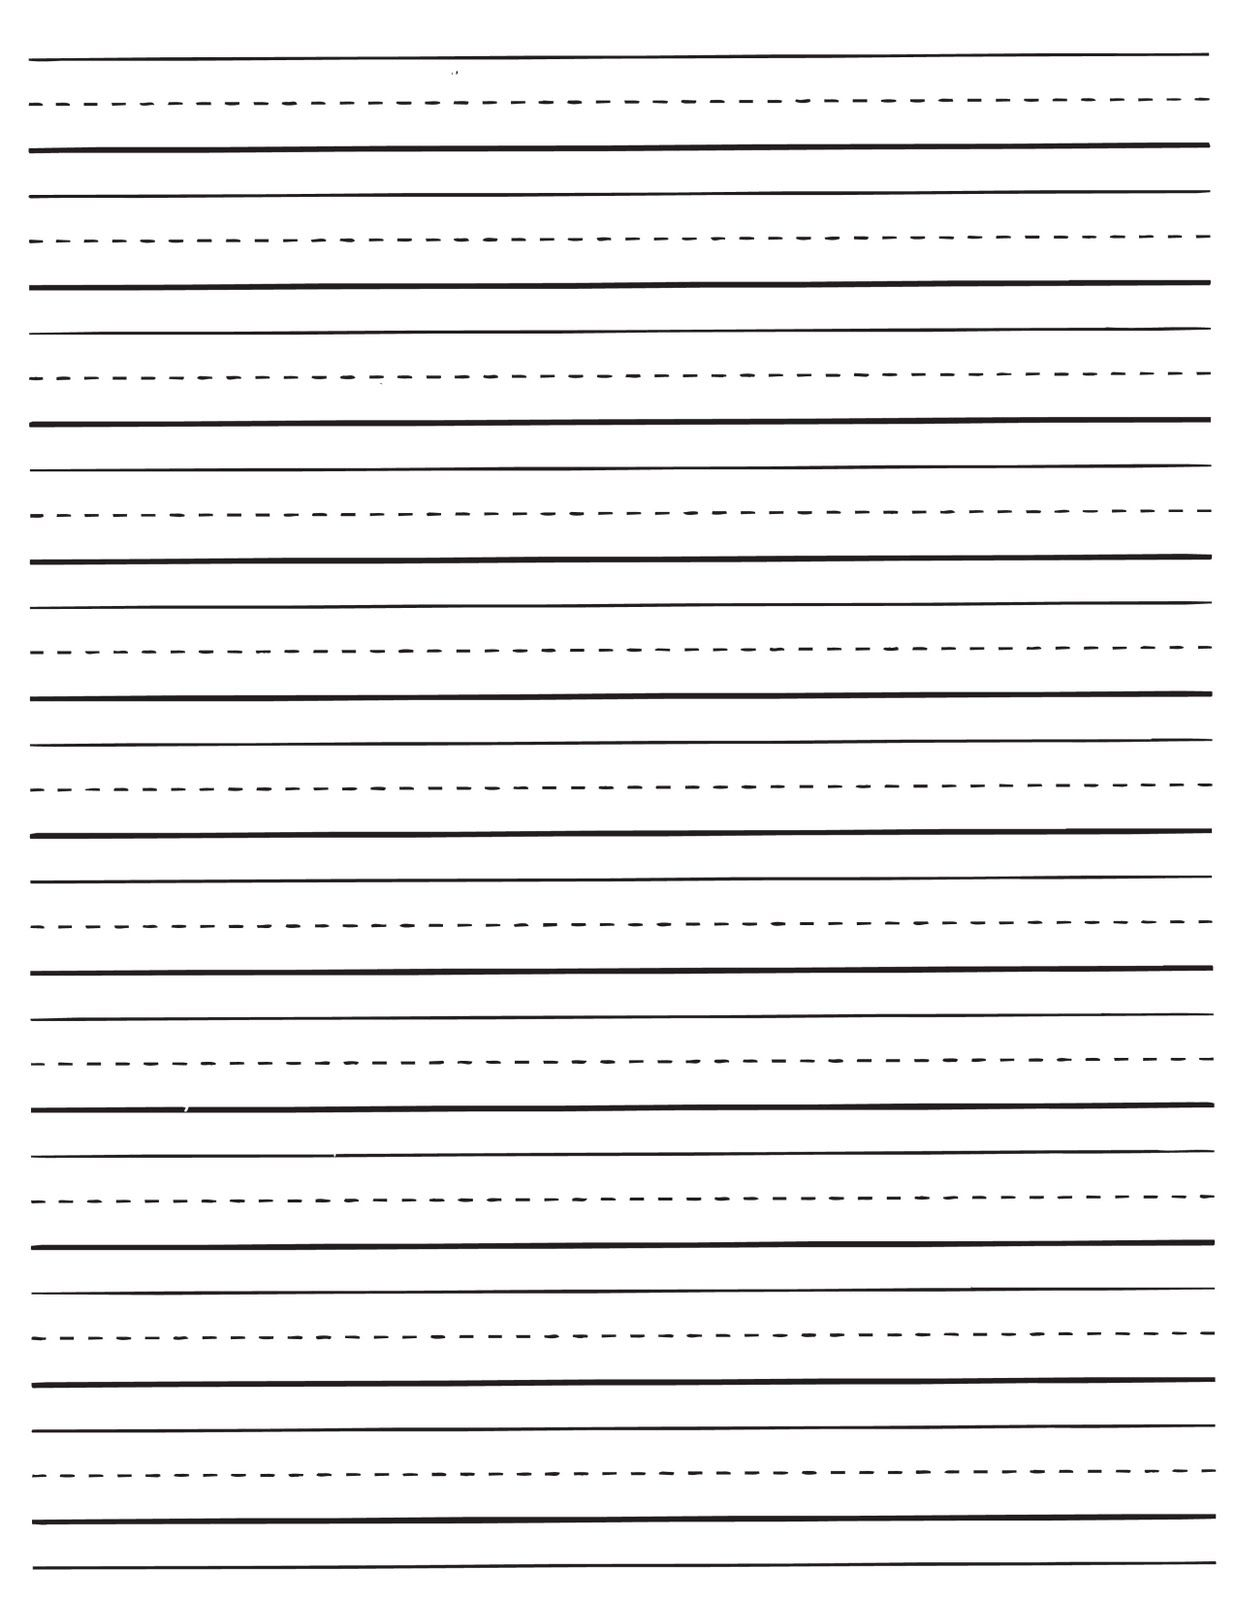 Image Result For Primary Lined Paper